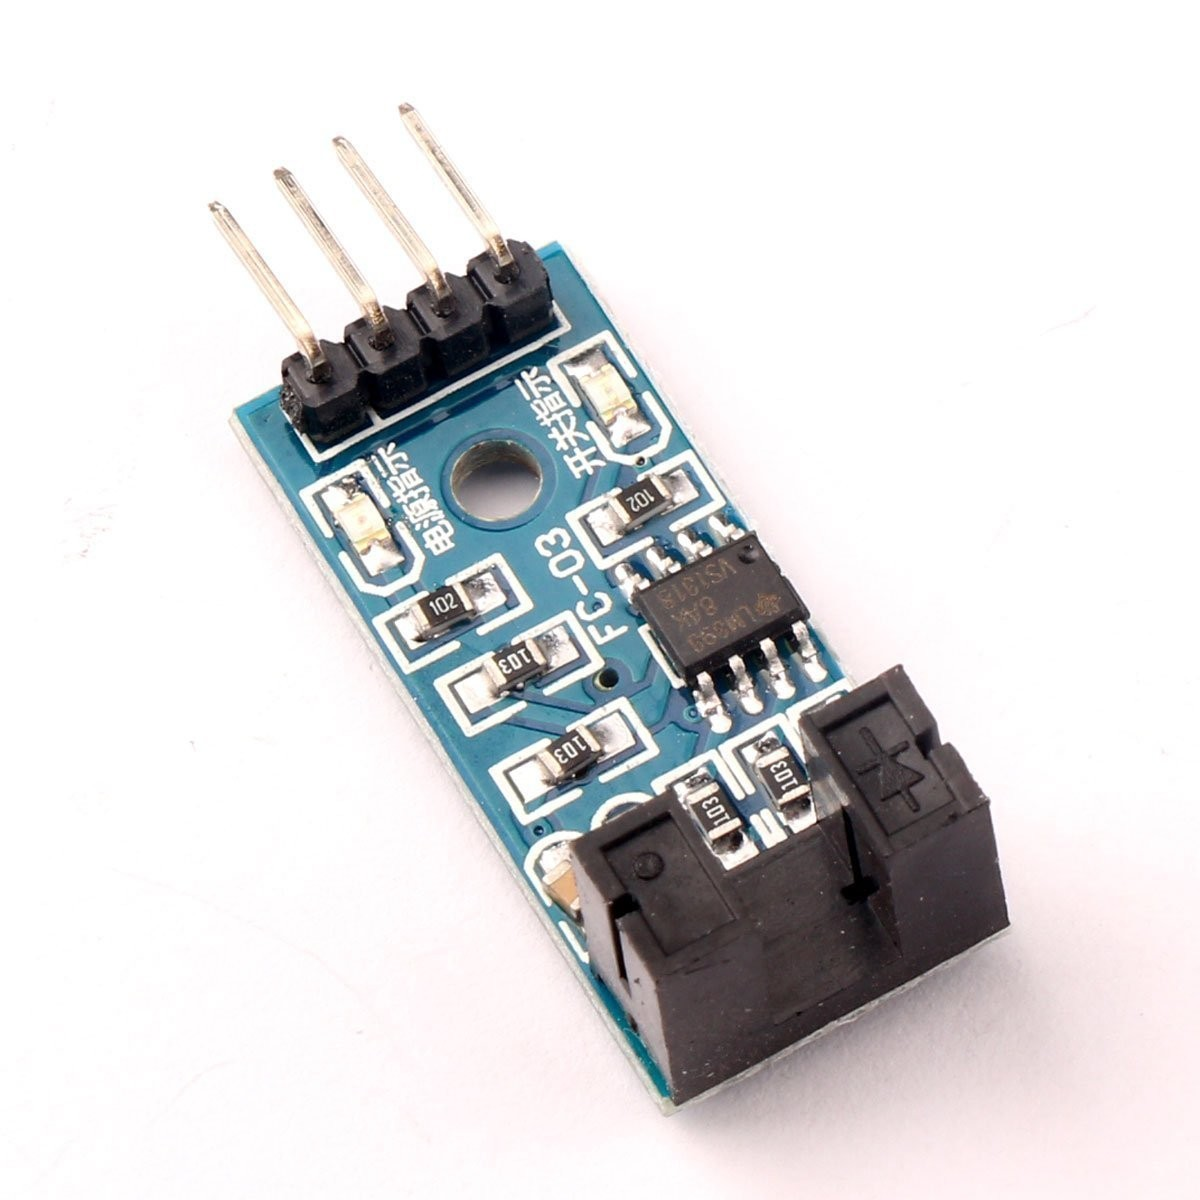 IR Comparitor Speed Sensor LM393